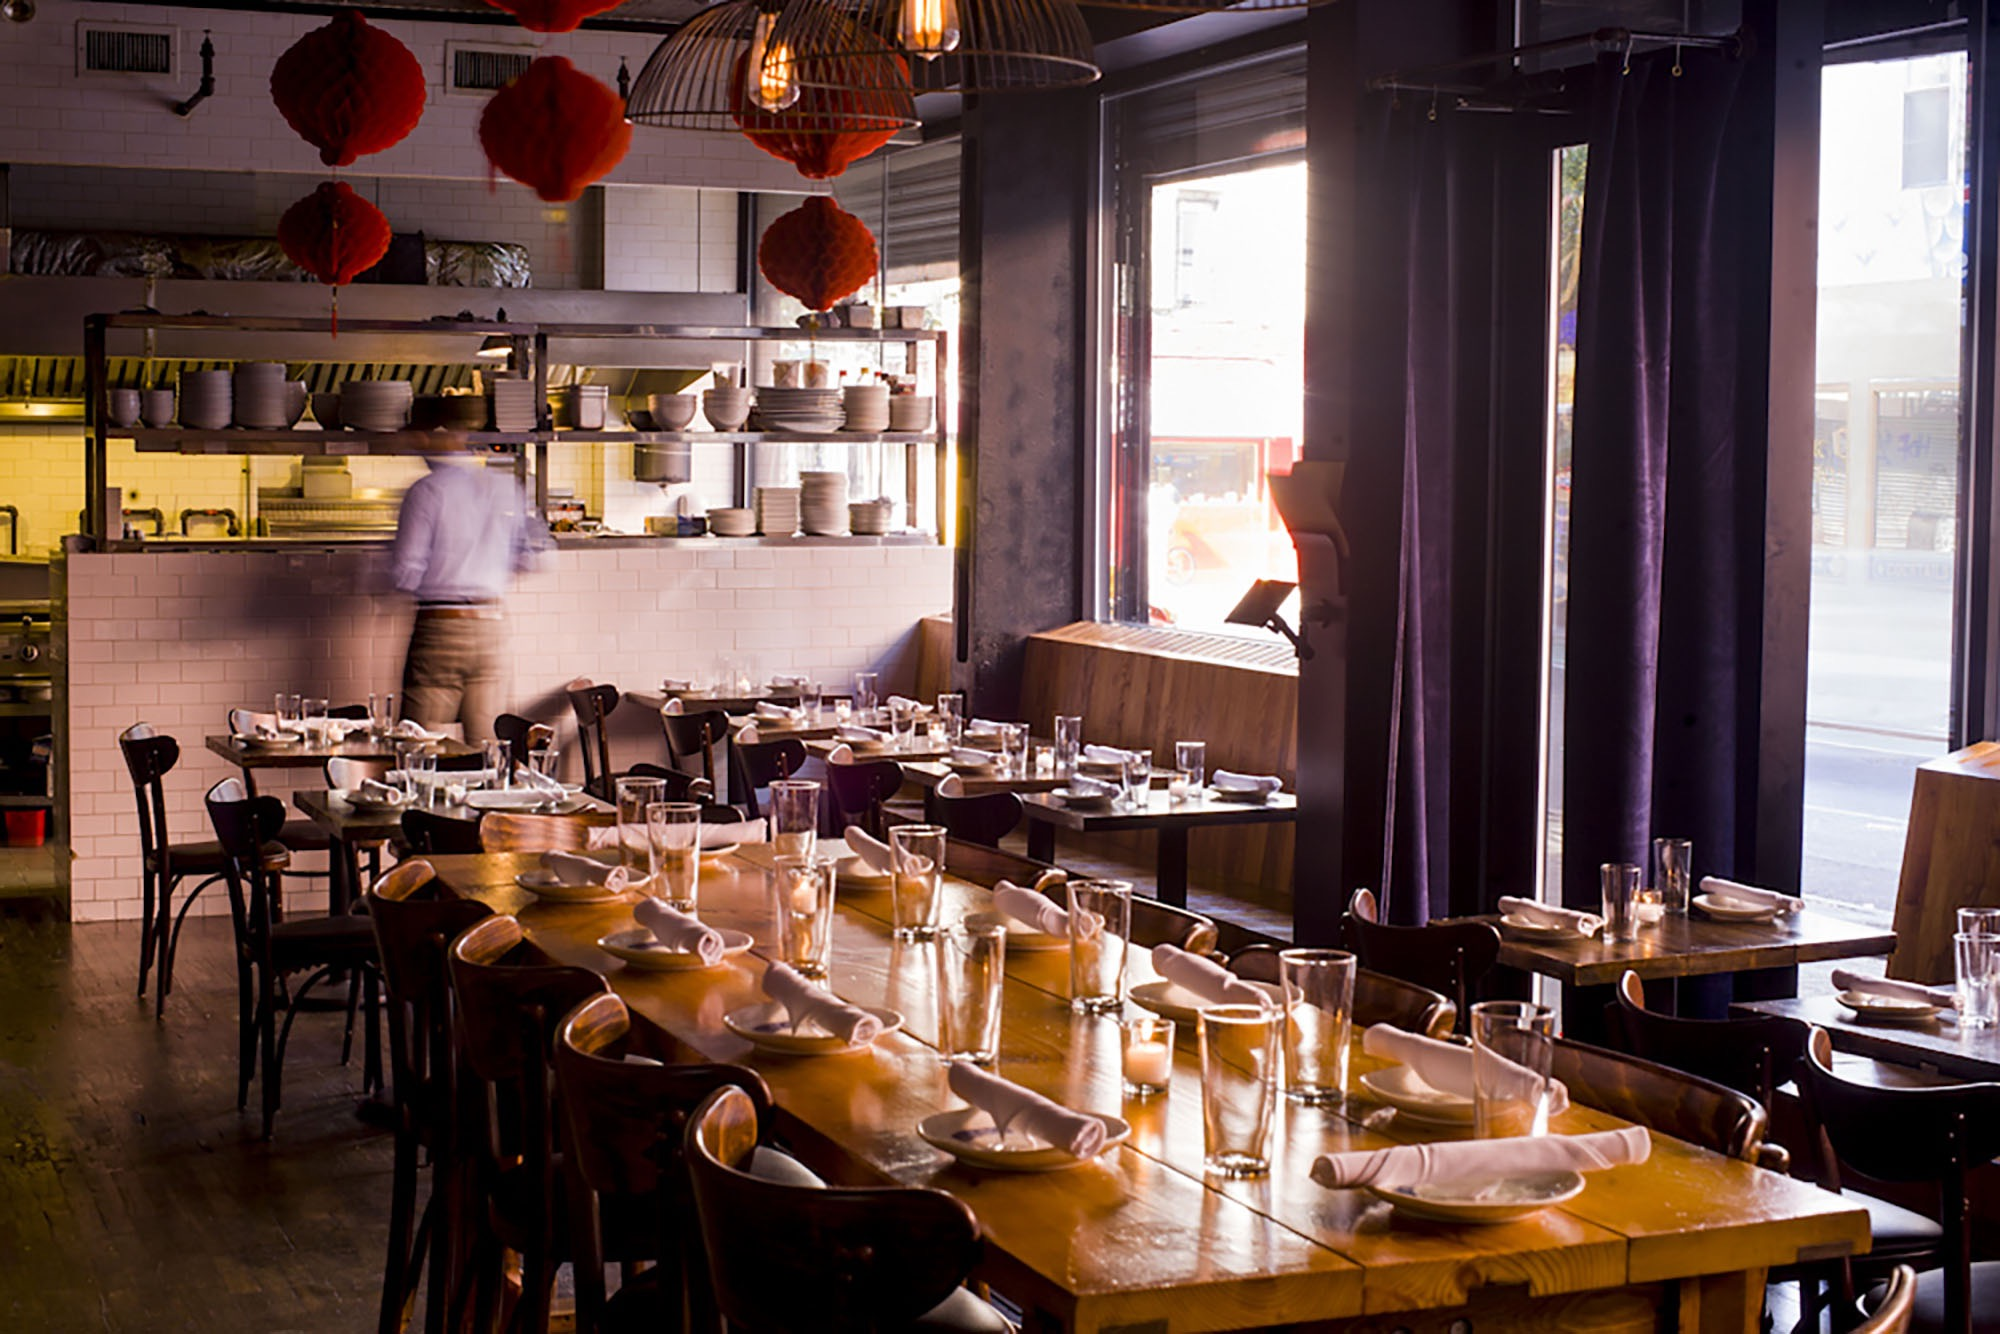 A waitor is setting the tables at an upscale chinese restaurant in the Lower East Side.